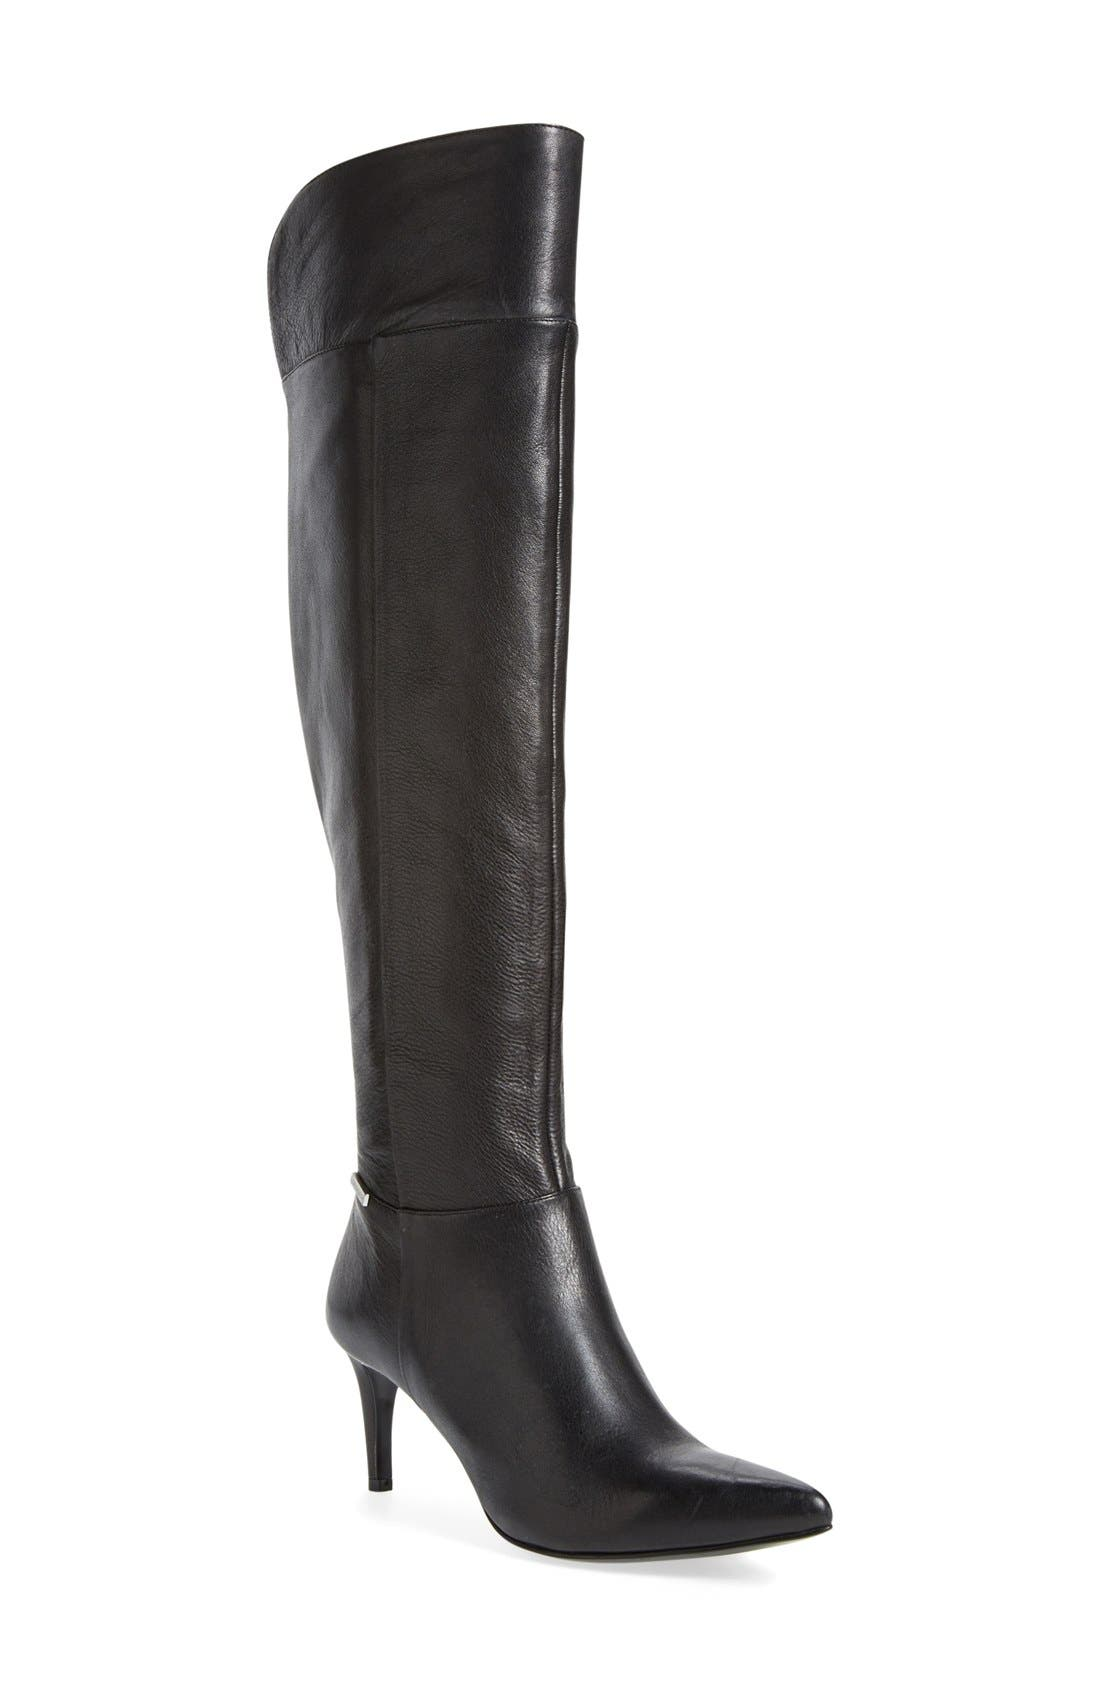 Main Image - Calvin Klein 'Clancey' Over the Knee Boot (Women)